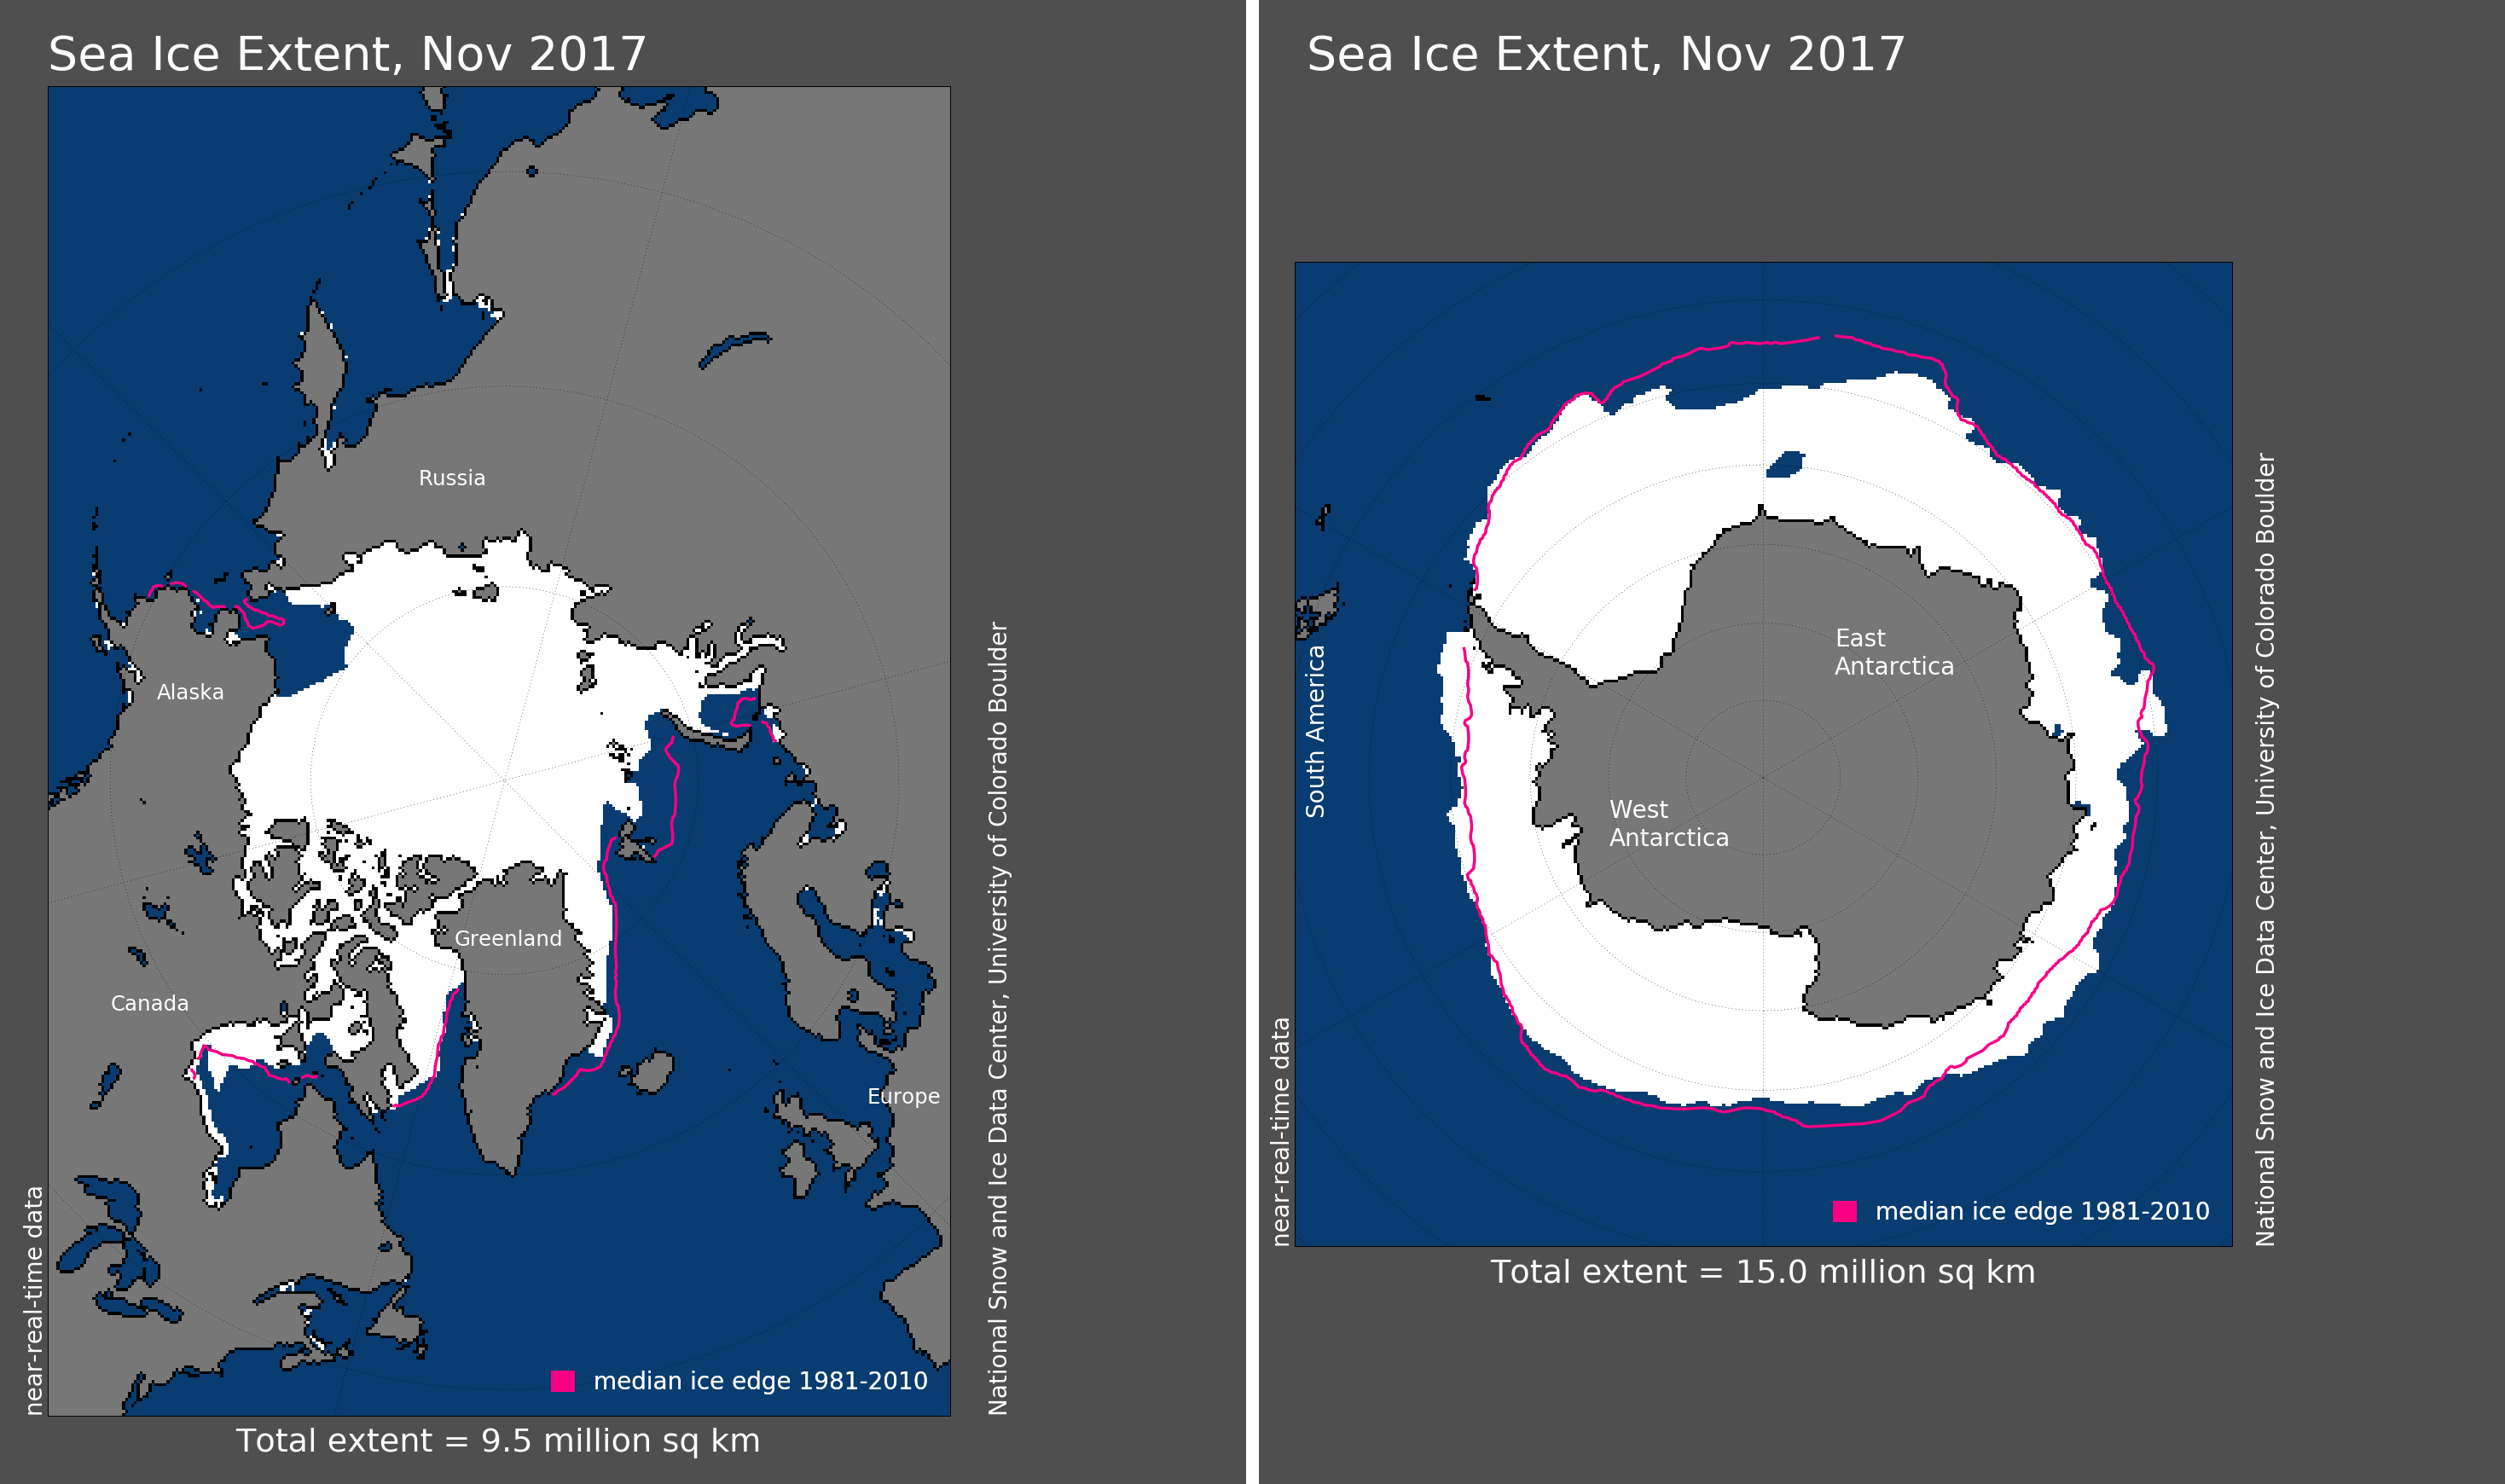 Maps of Arctic and Antarctic sea ice extent in November 2017